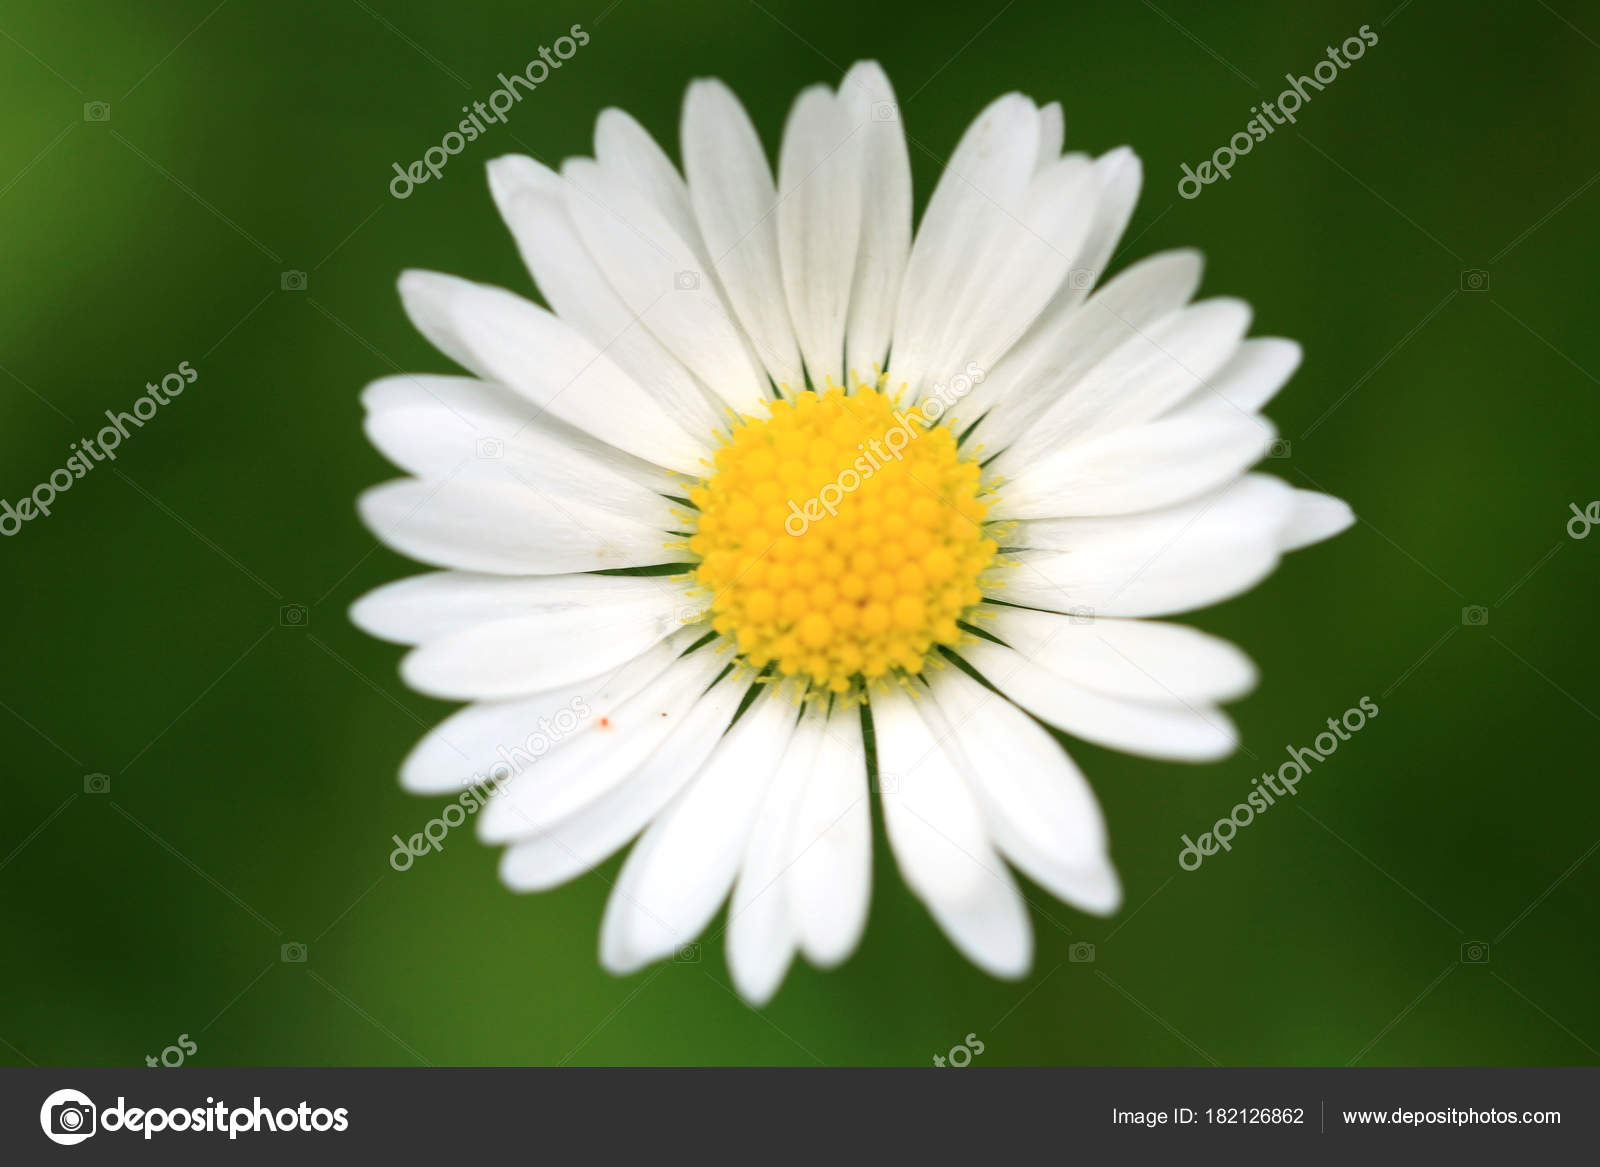 Daisy flower head focus base petals lawn eco home garden stock daisy flower head with focus on the base of the petals lawn in eco home garden photo by fotokate izmirmasajfo